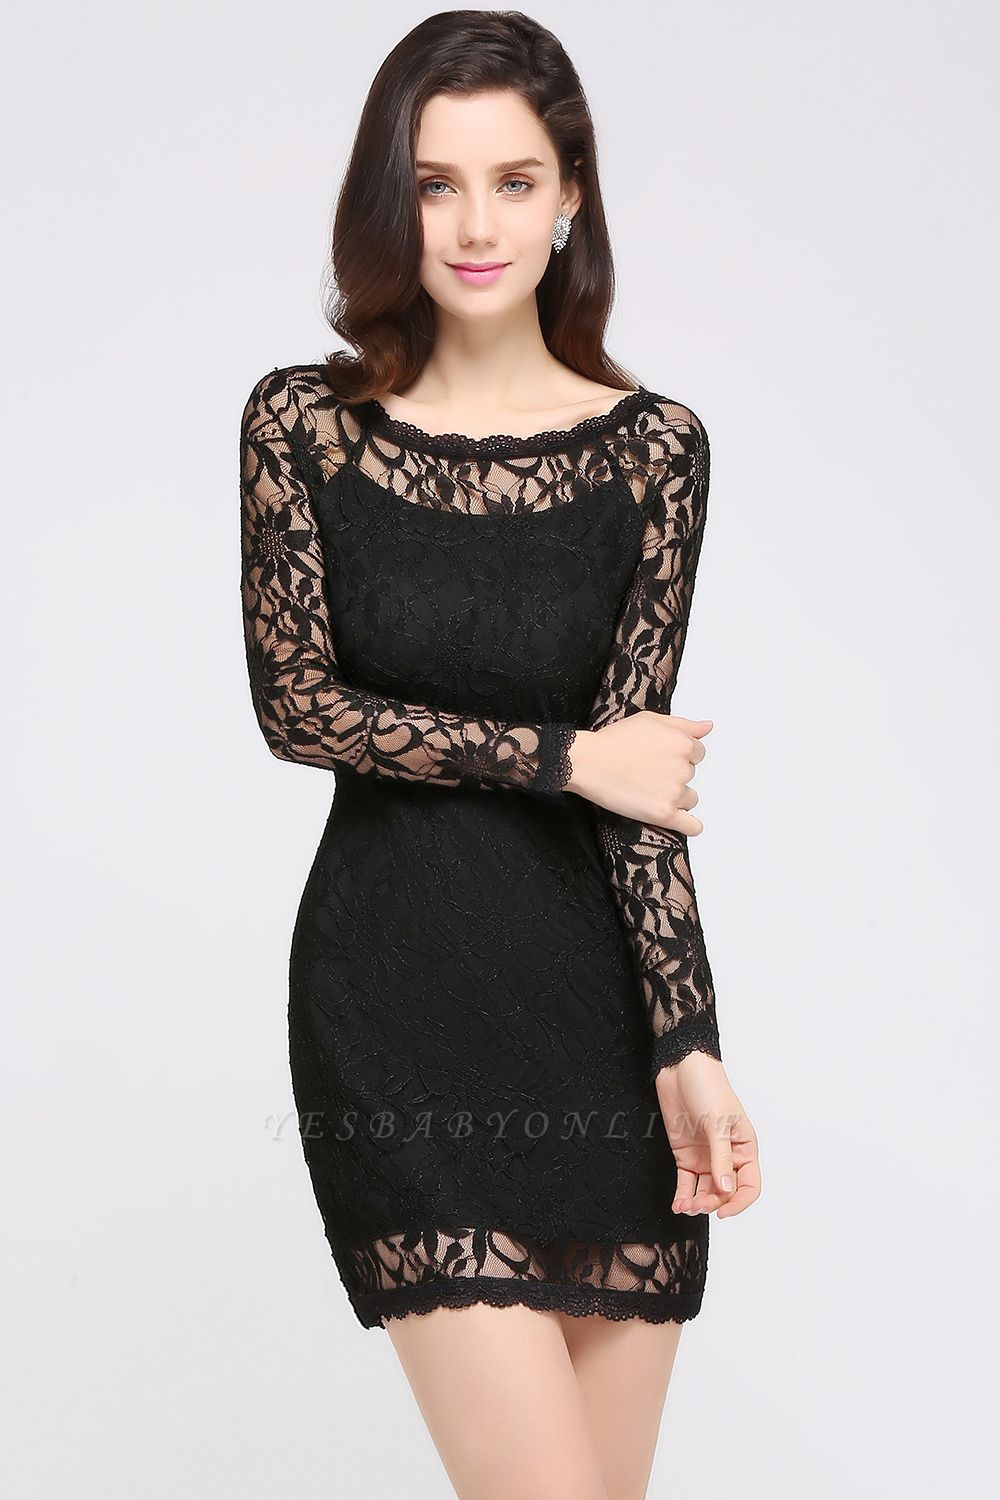 Lace Sheath Sexy Black Homecoming Dresses with Long Sleeves